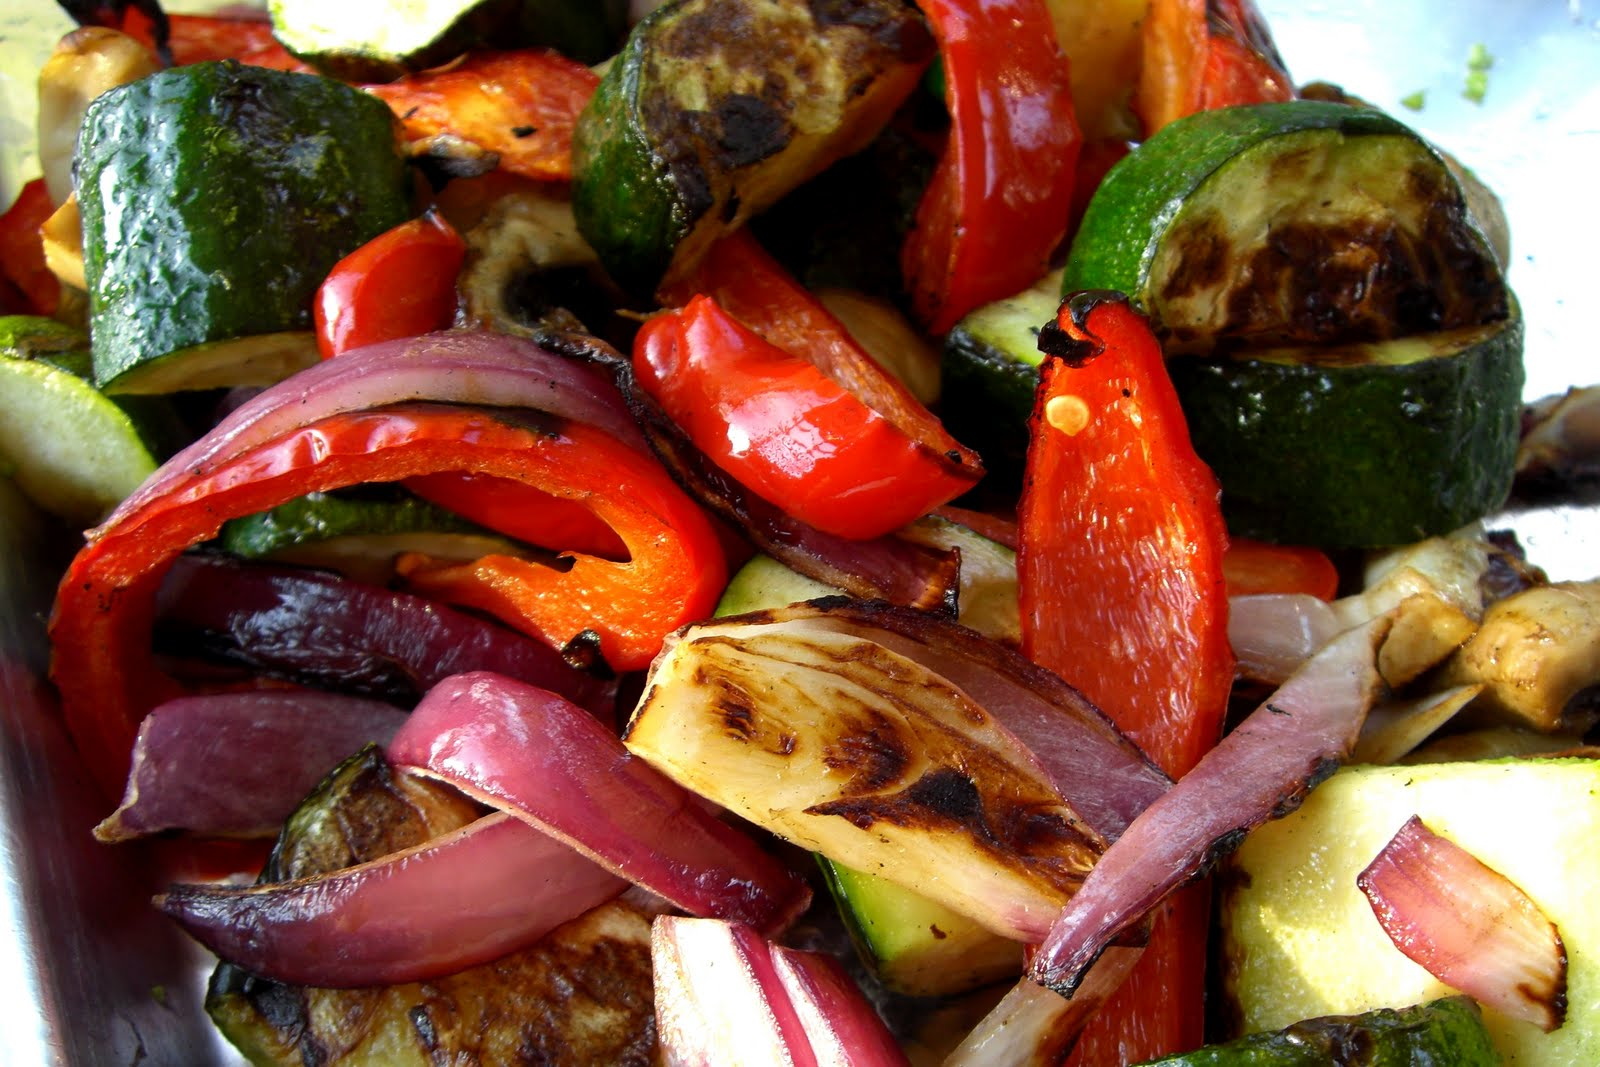 Delicious Vegetarian Options for the BBQ